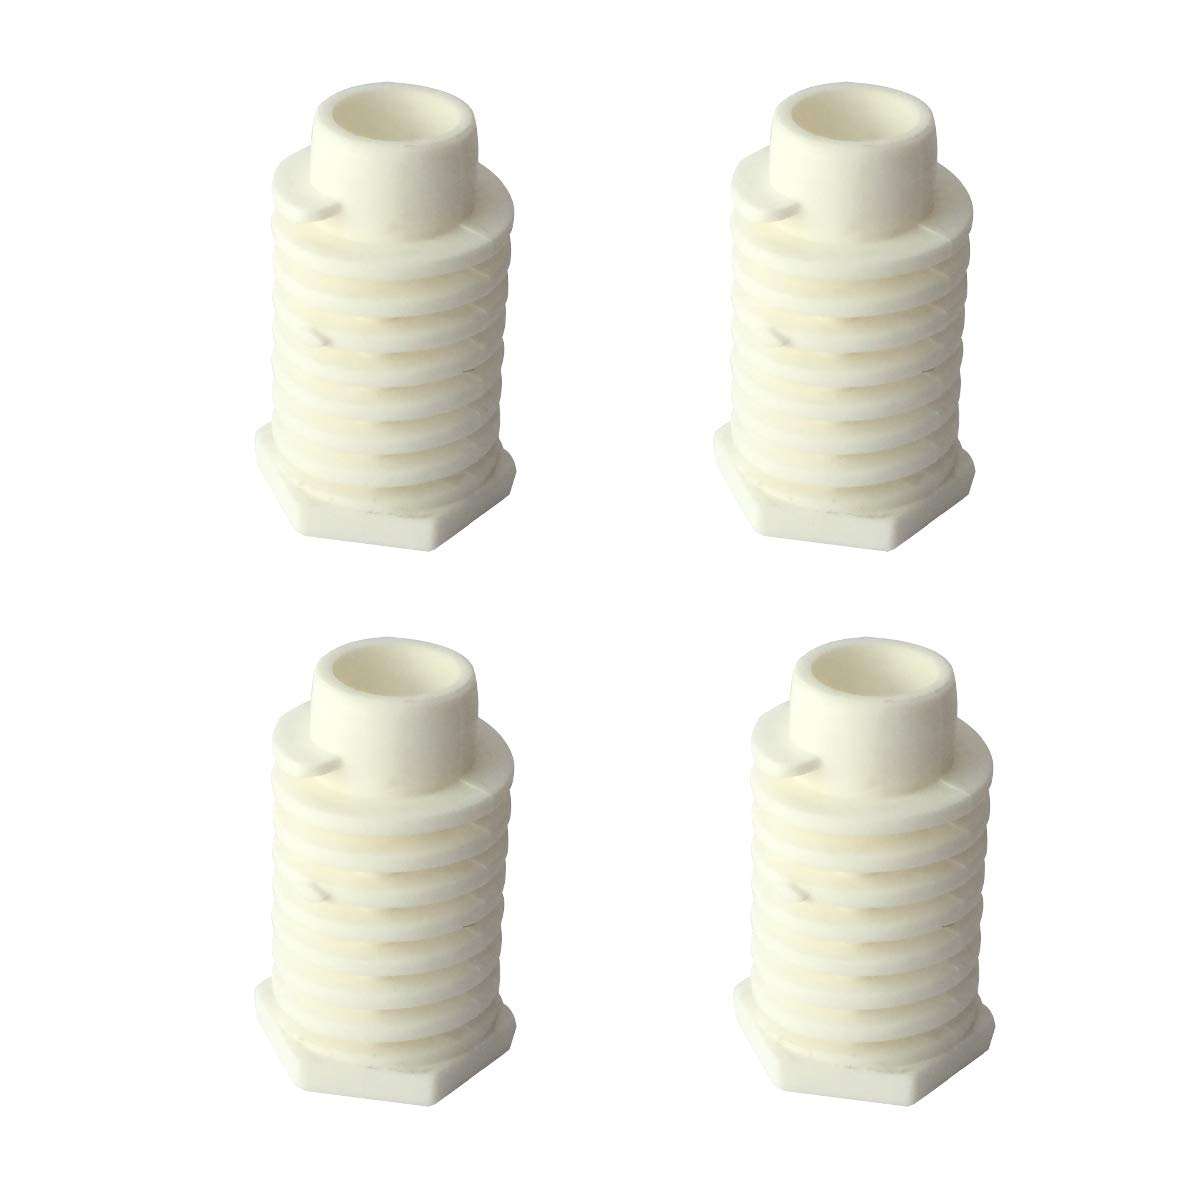 LONYE 49621 Dryer Leveling Foot for Whirlpool Kenmore Maytag AP4295805 PS1609293 (Pack of 4)